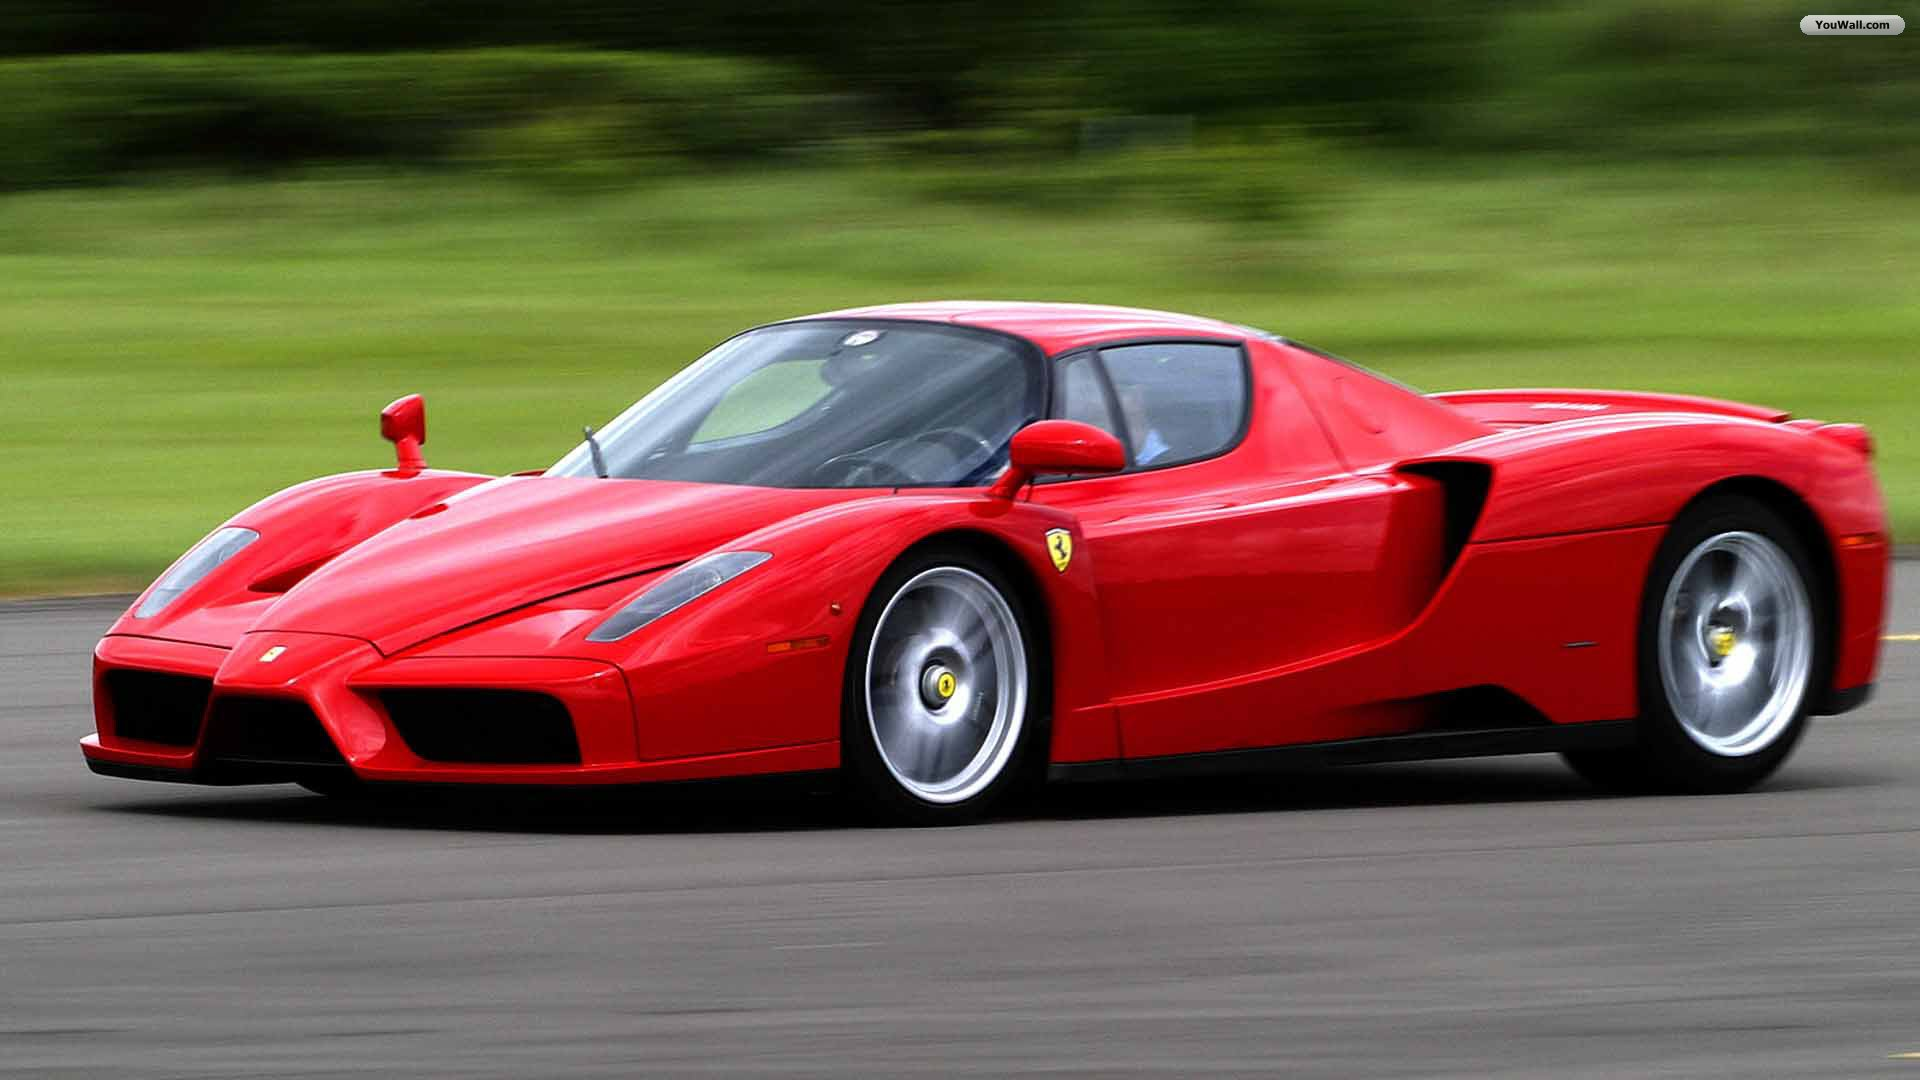 Pictures of ferrari enzo